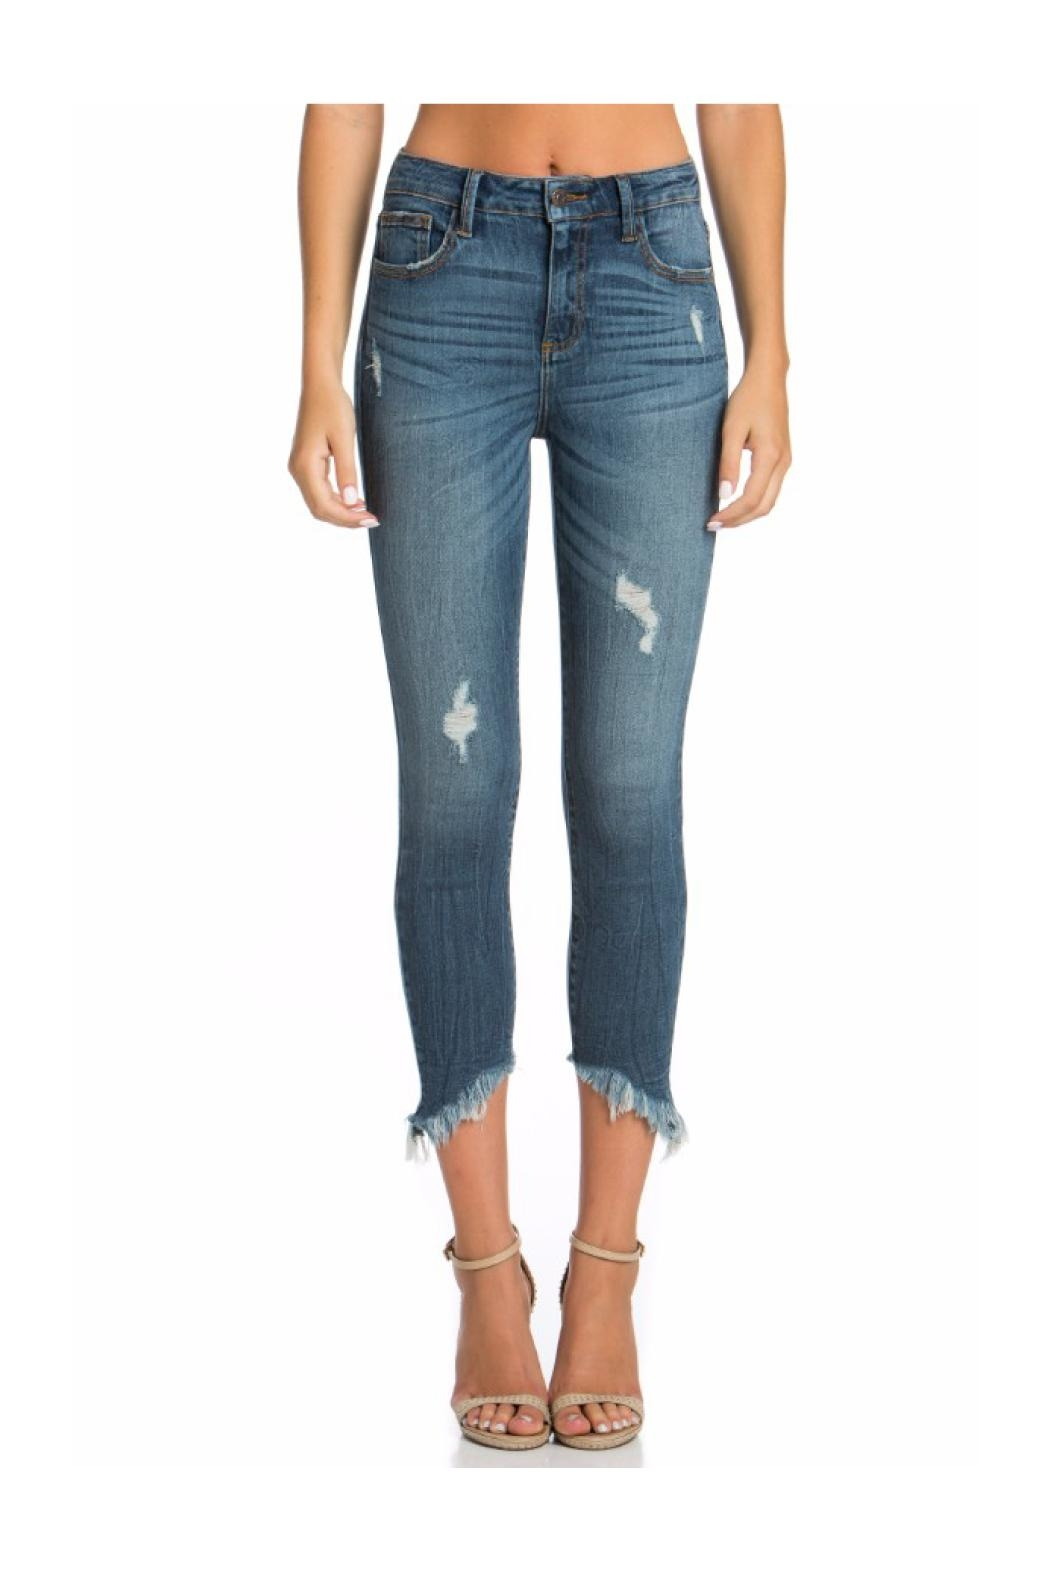 Polly & Esther High Waisted Jeans - Main Image